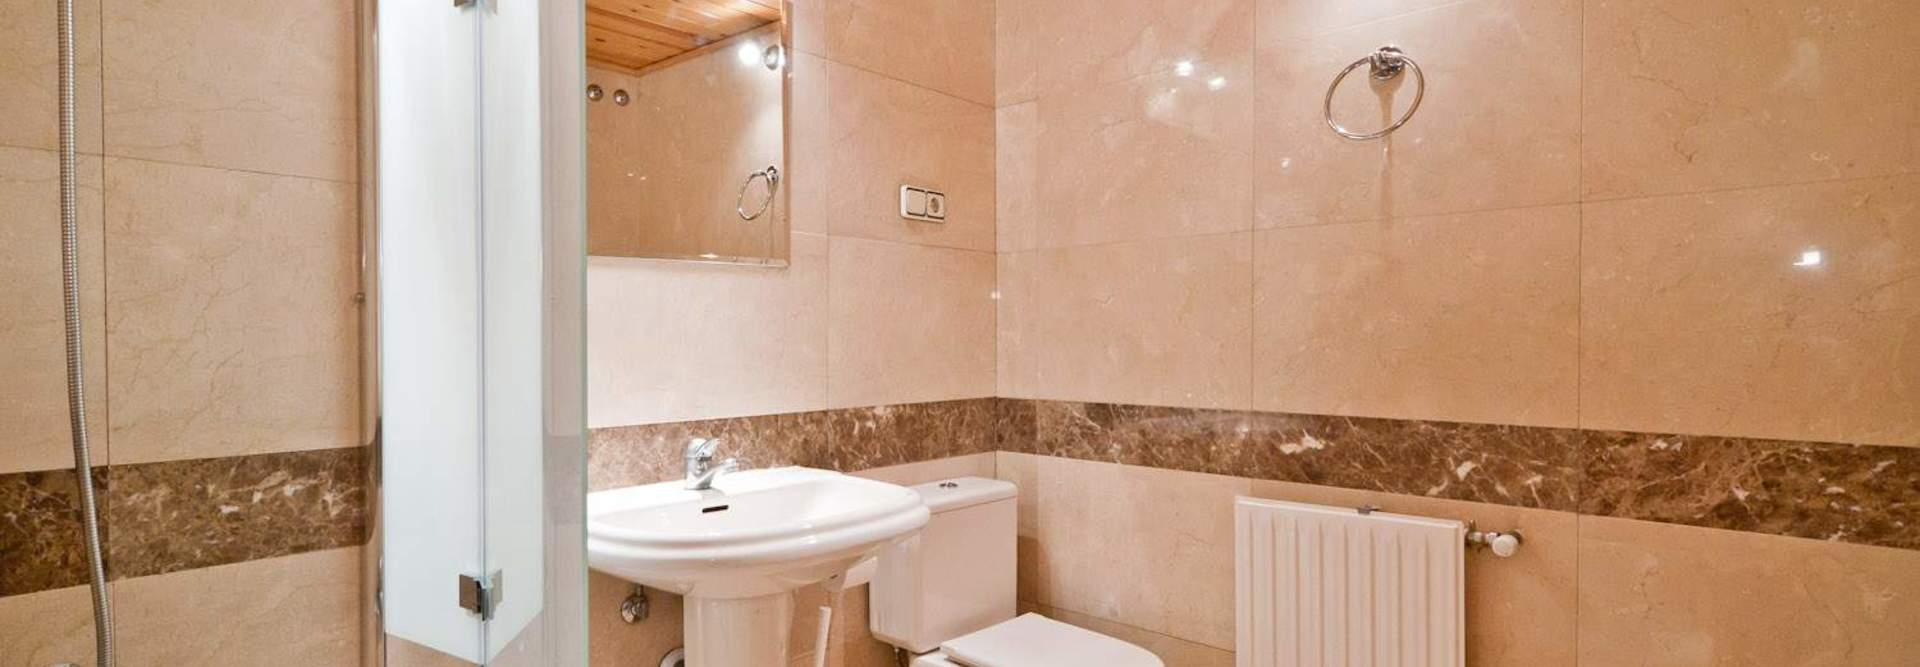 Home alquiler apartamento madrid centro mad4rent  27